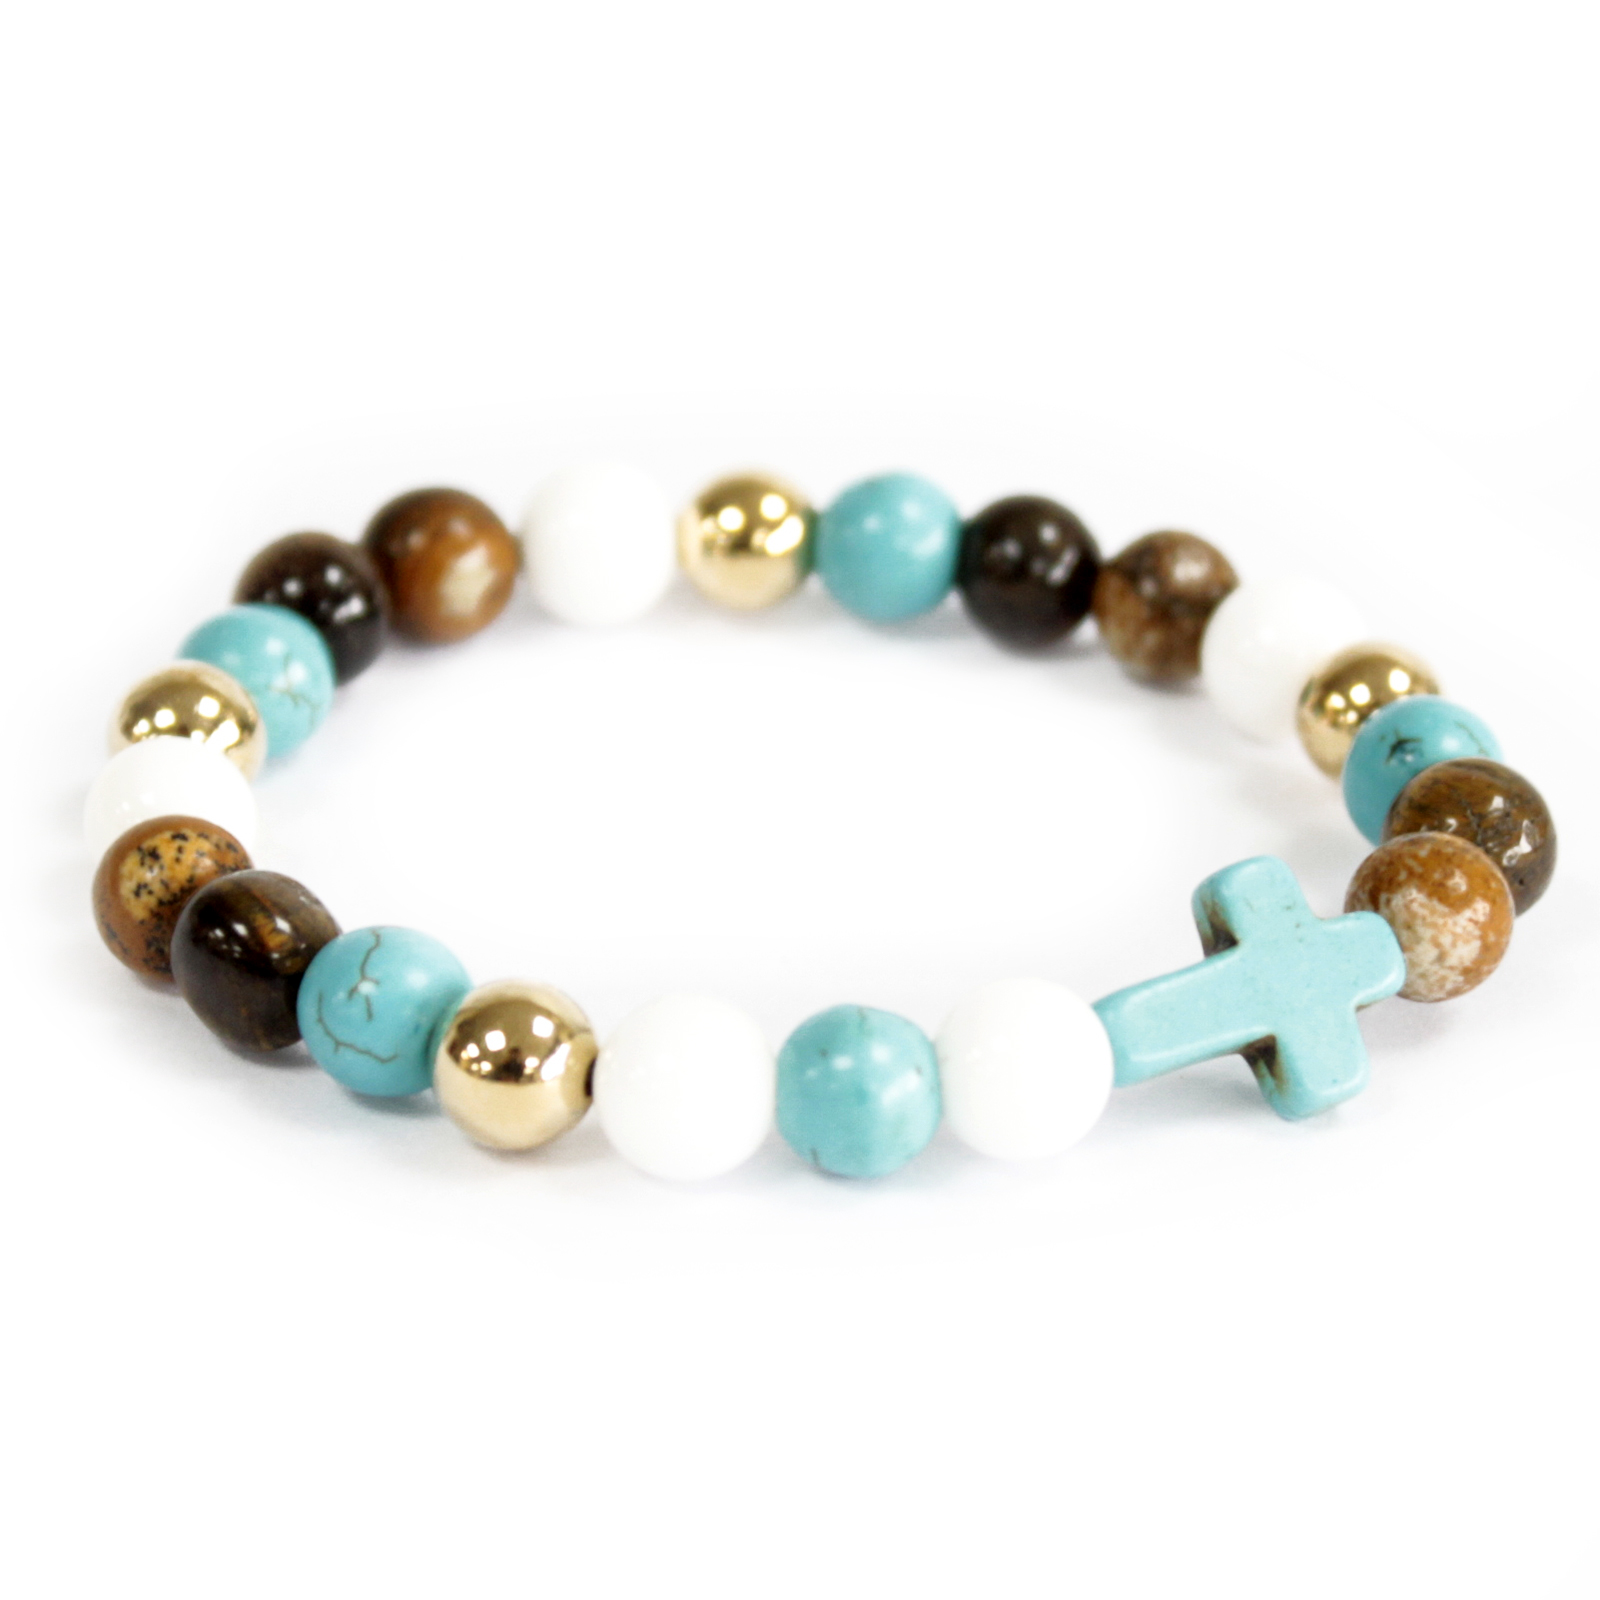 3x Turquoise Cross / Royal Beads - Gemstone Bracelet